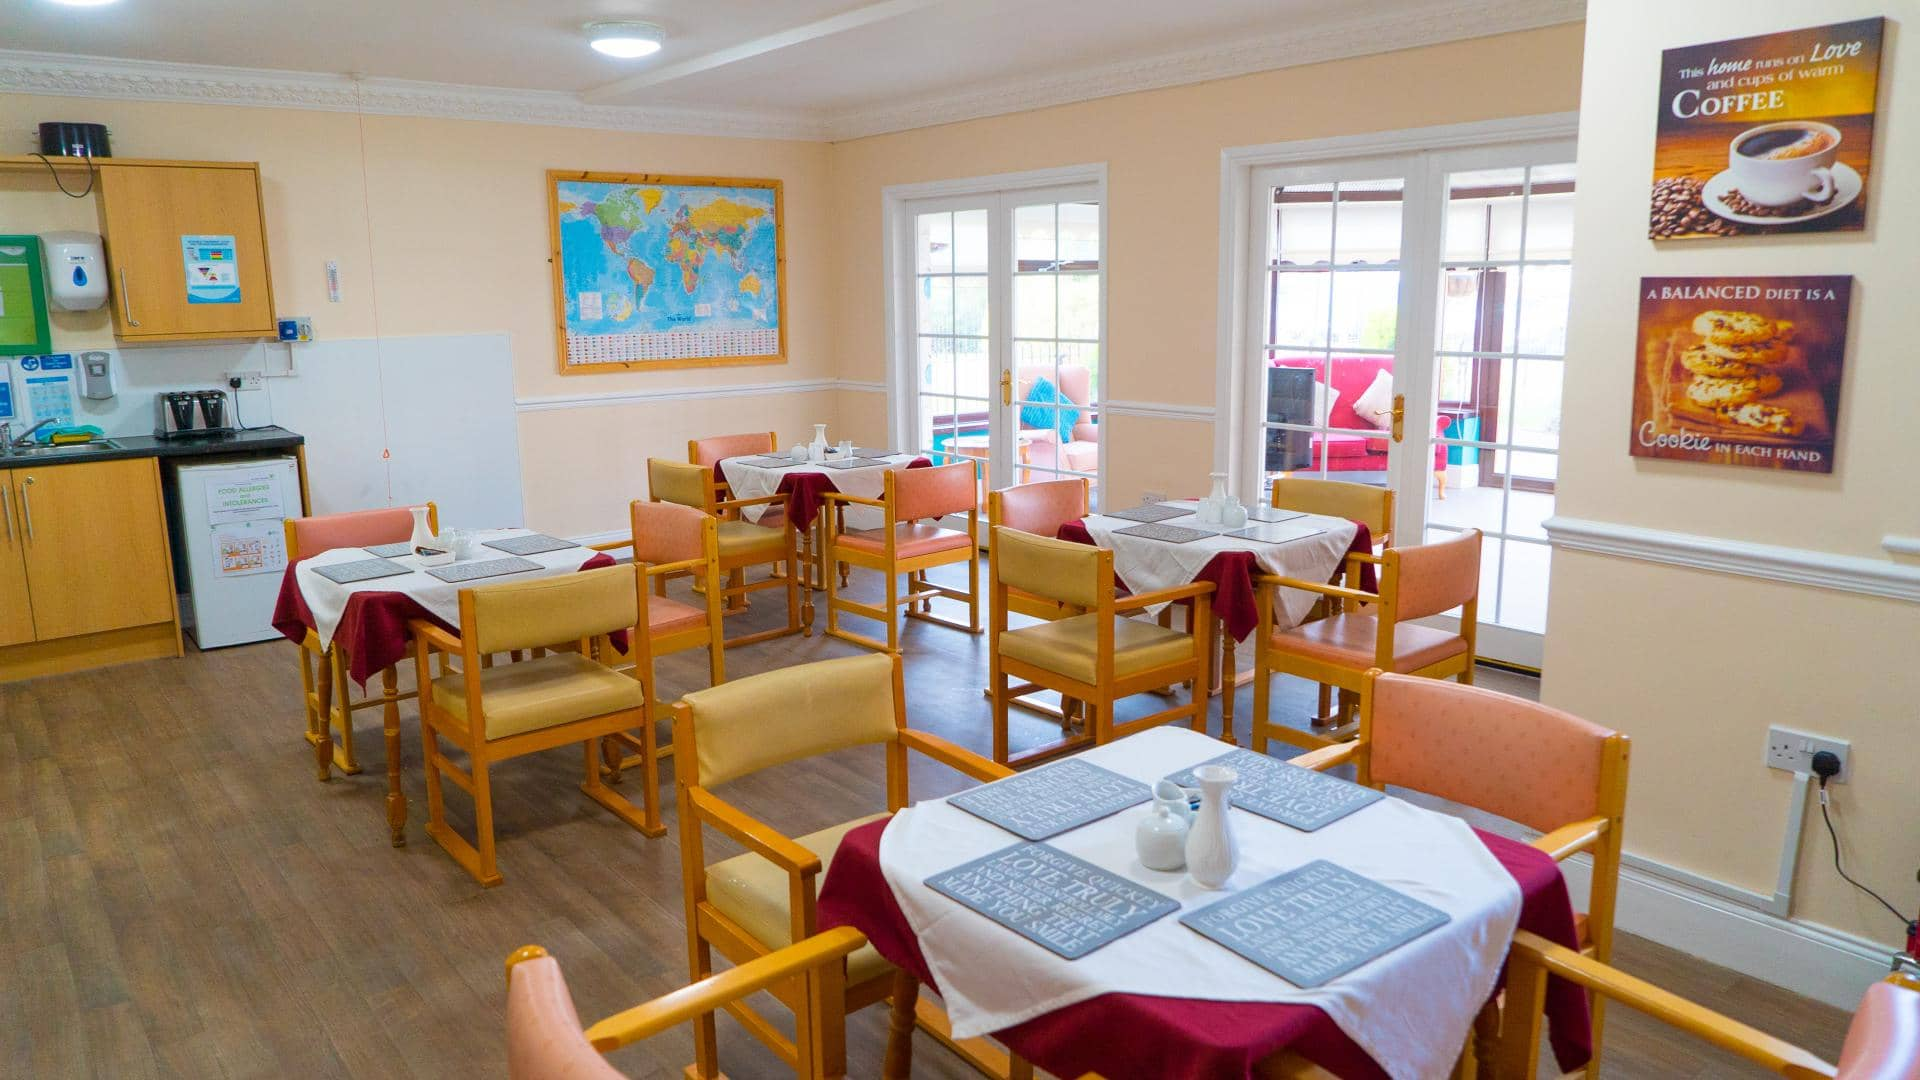 Care home in Sunderland dining room